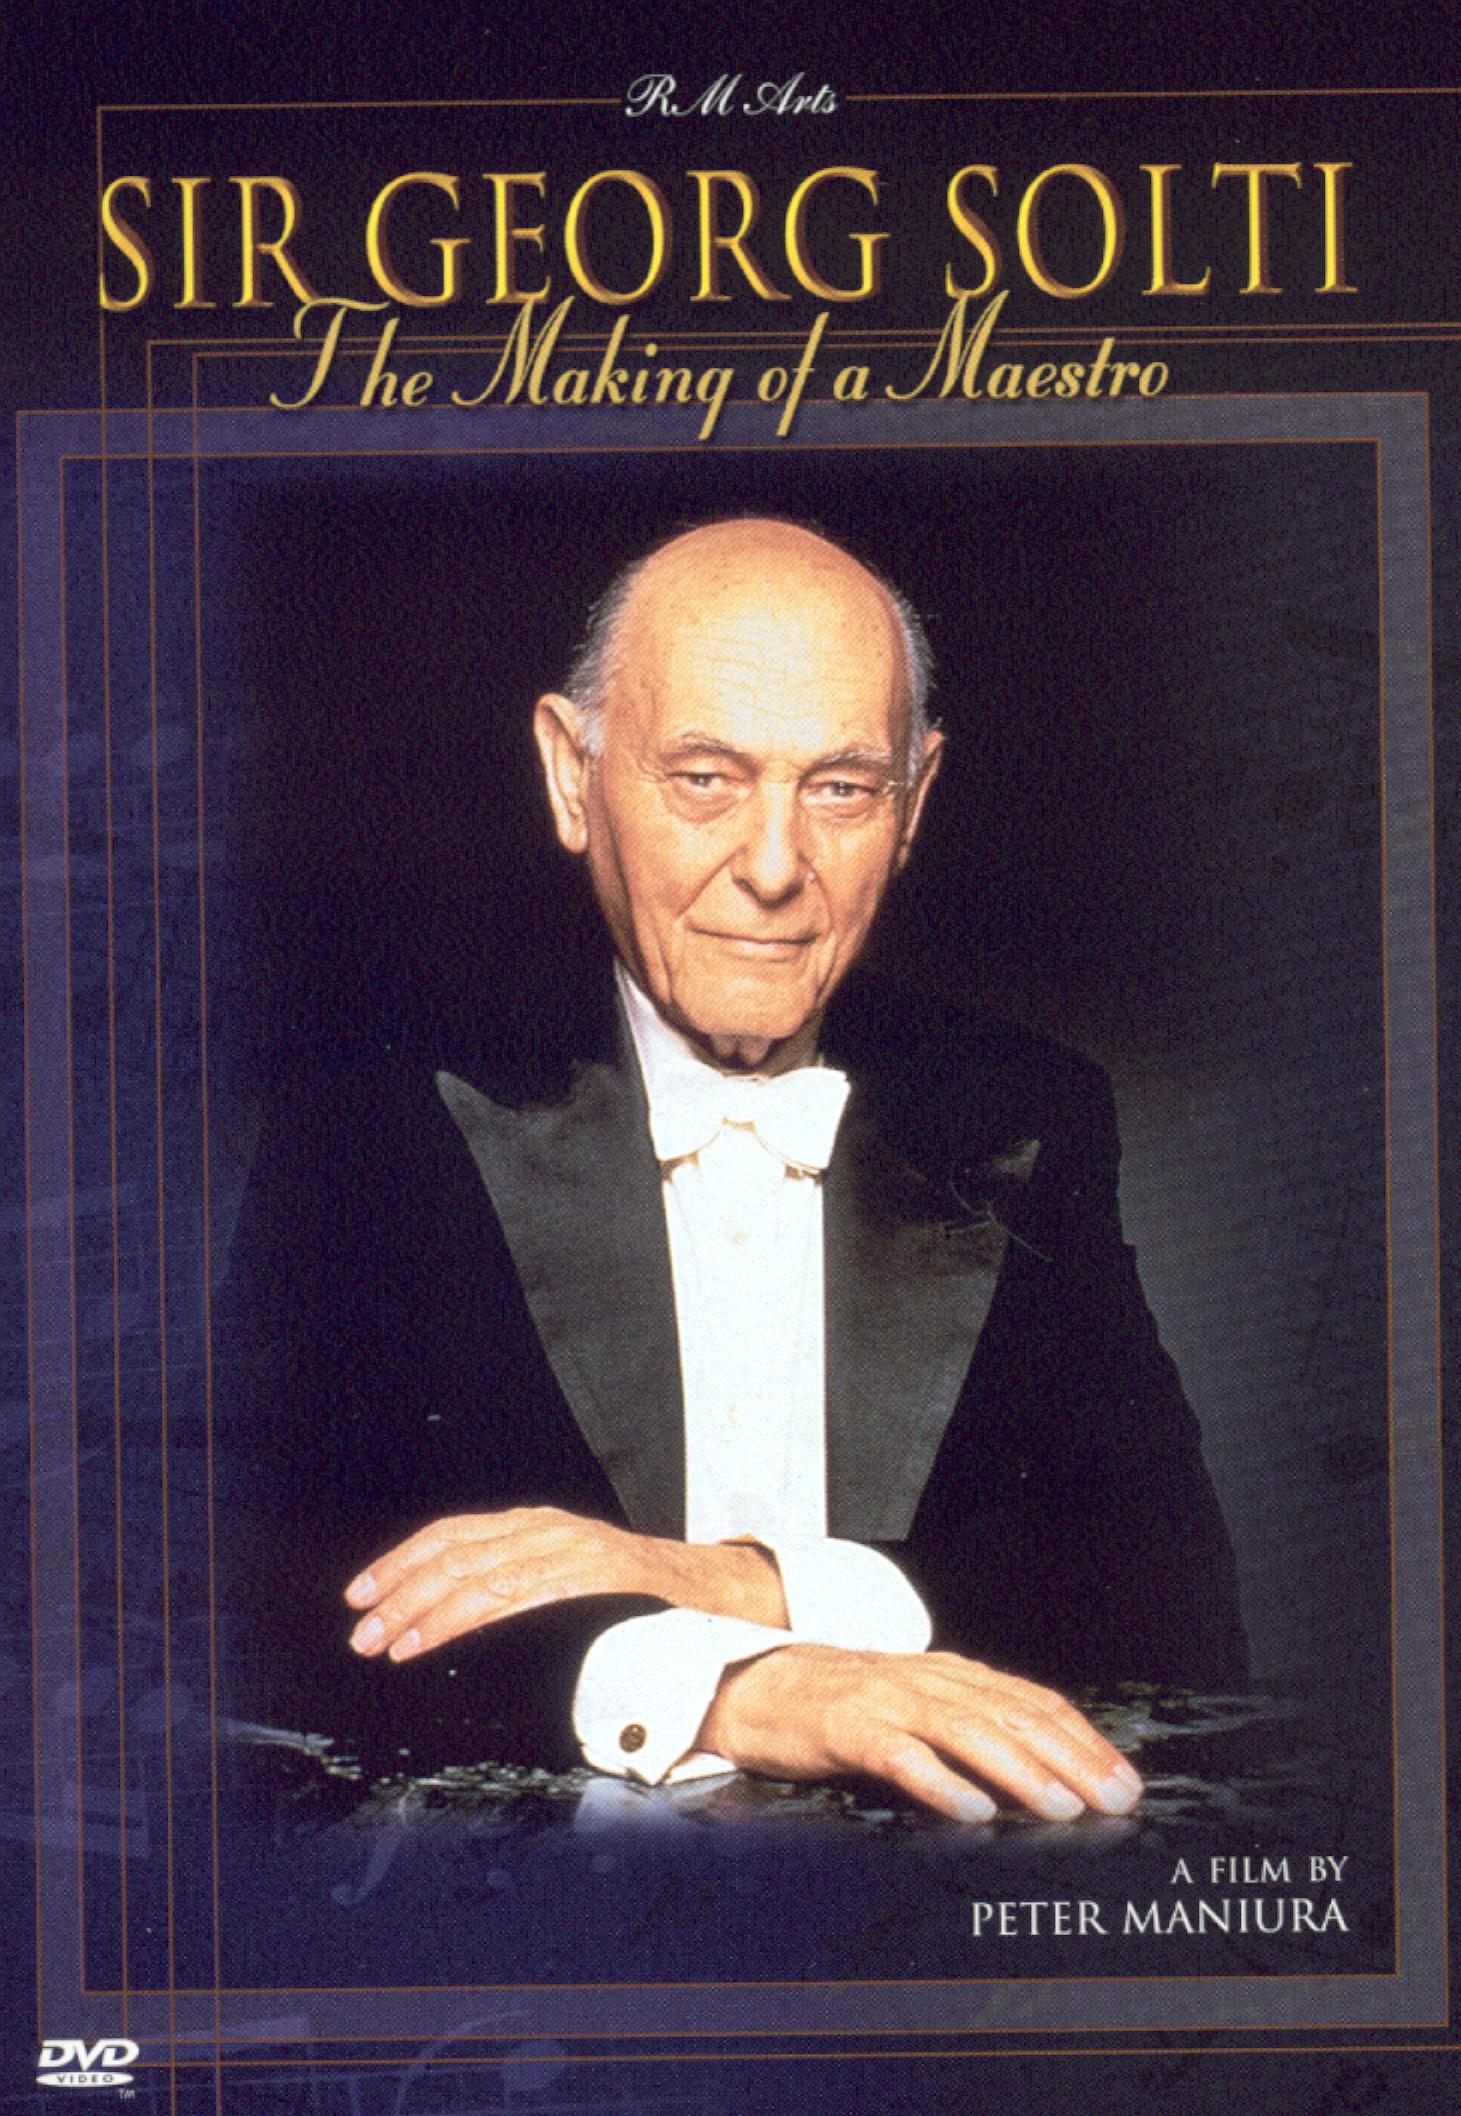 Sir Georg Solti: The Making of a Maestro (1997)